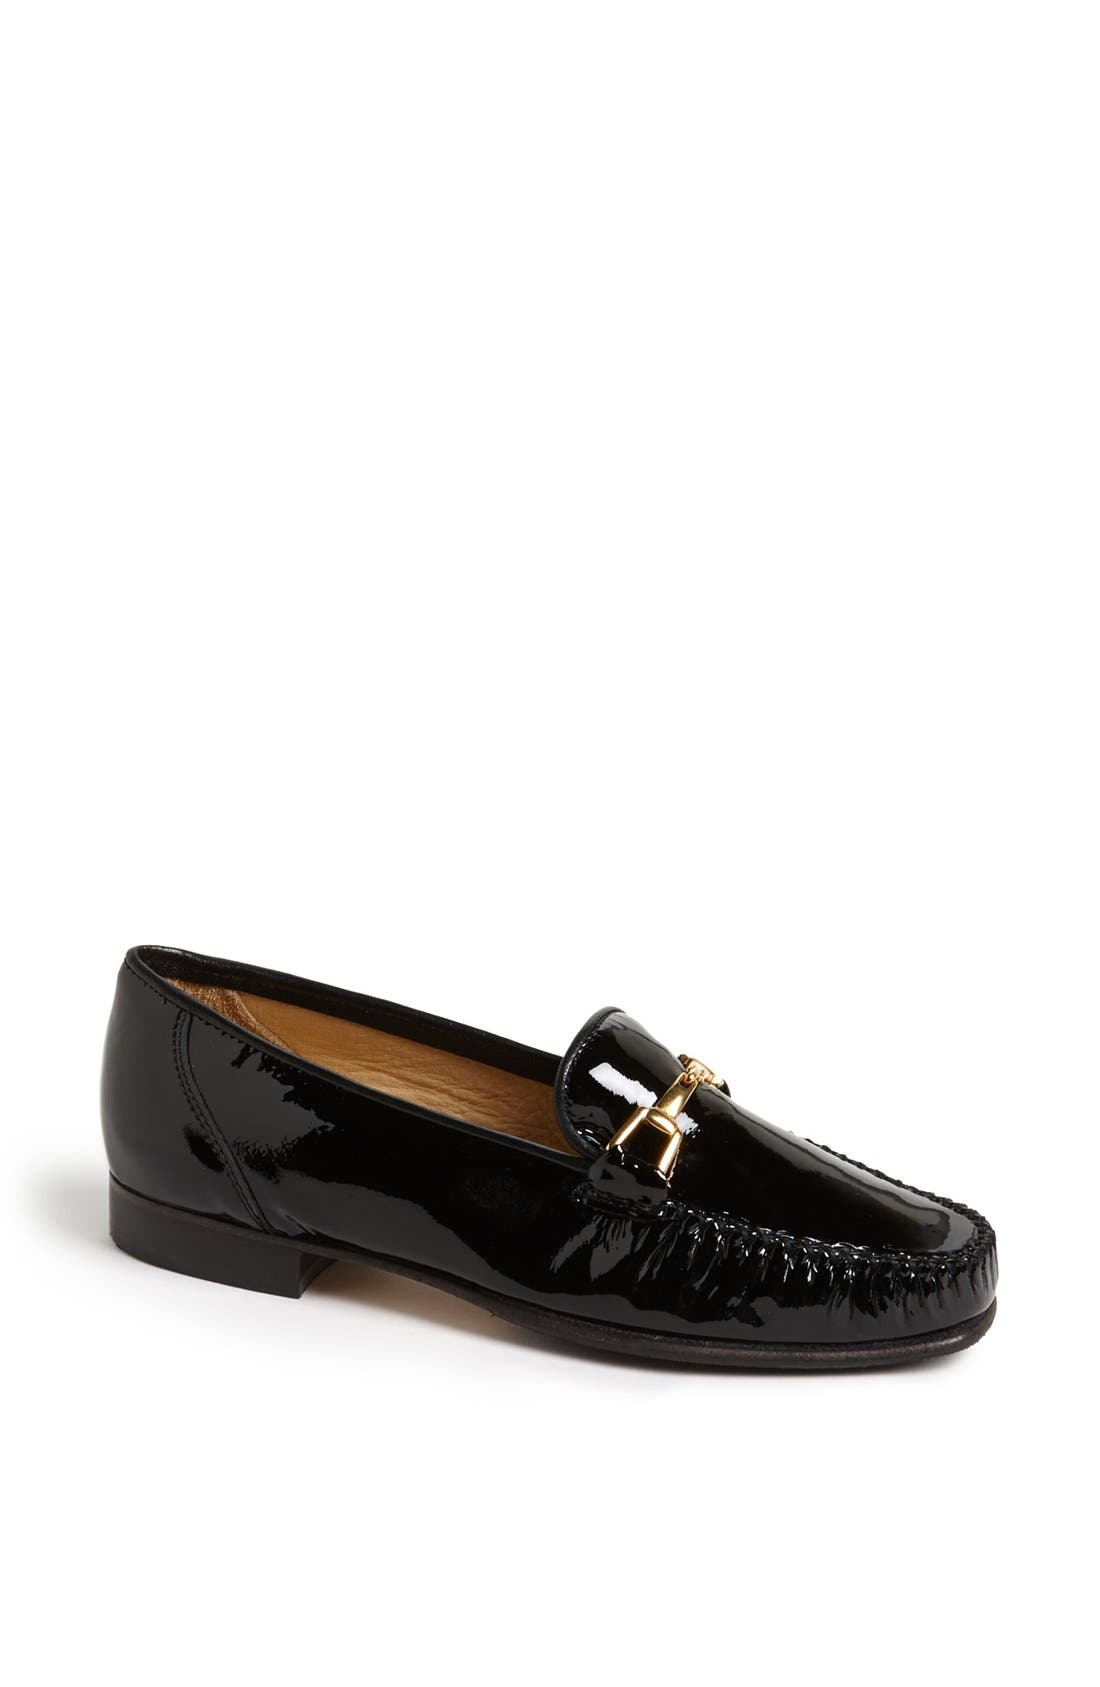 Main Image - Carvela Kurt Geiger 'Mariner' Patent Leather Flat